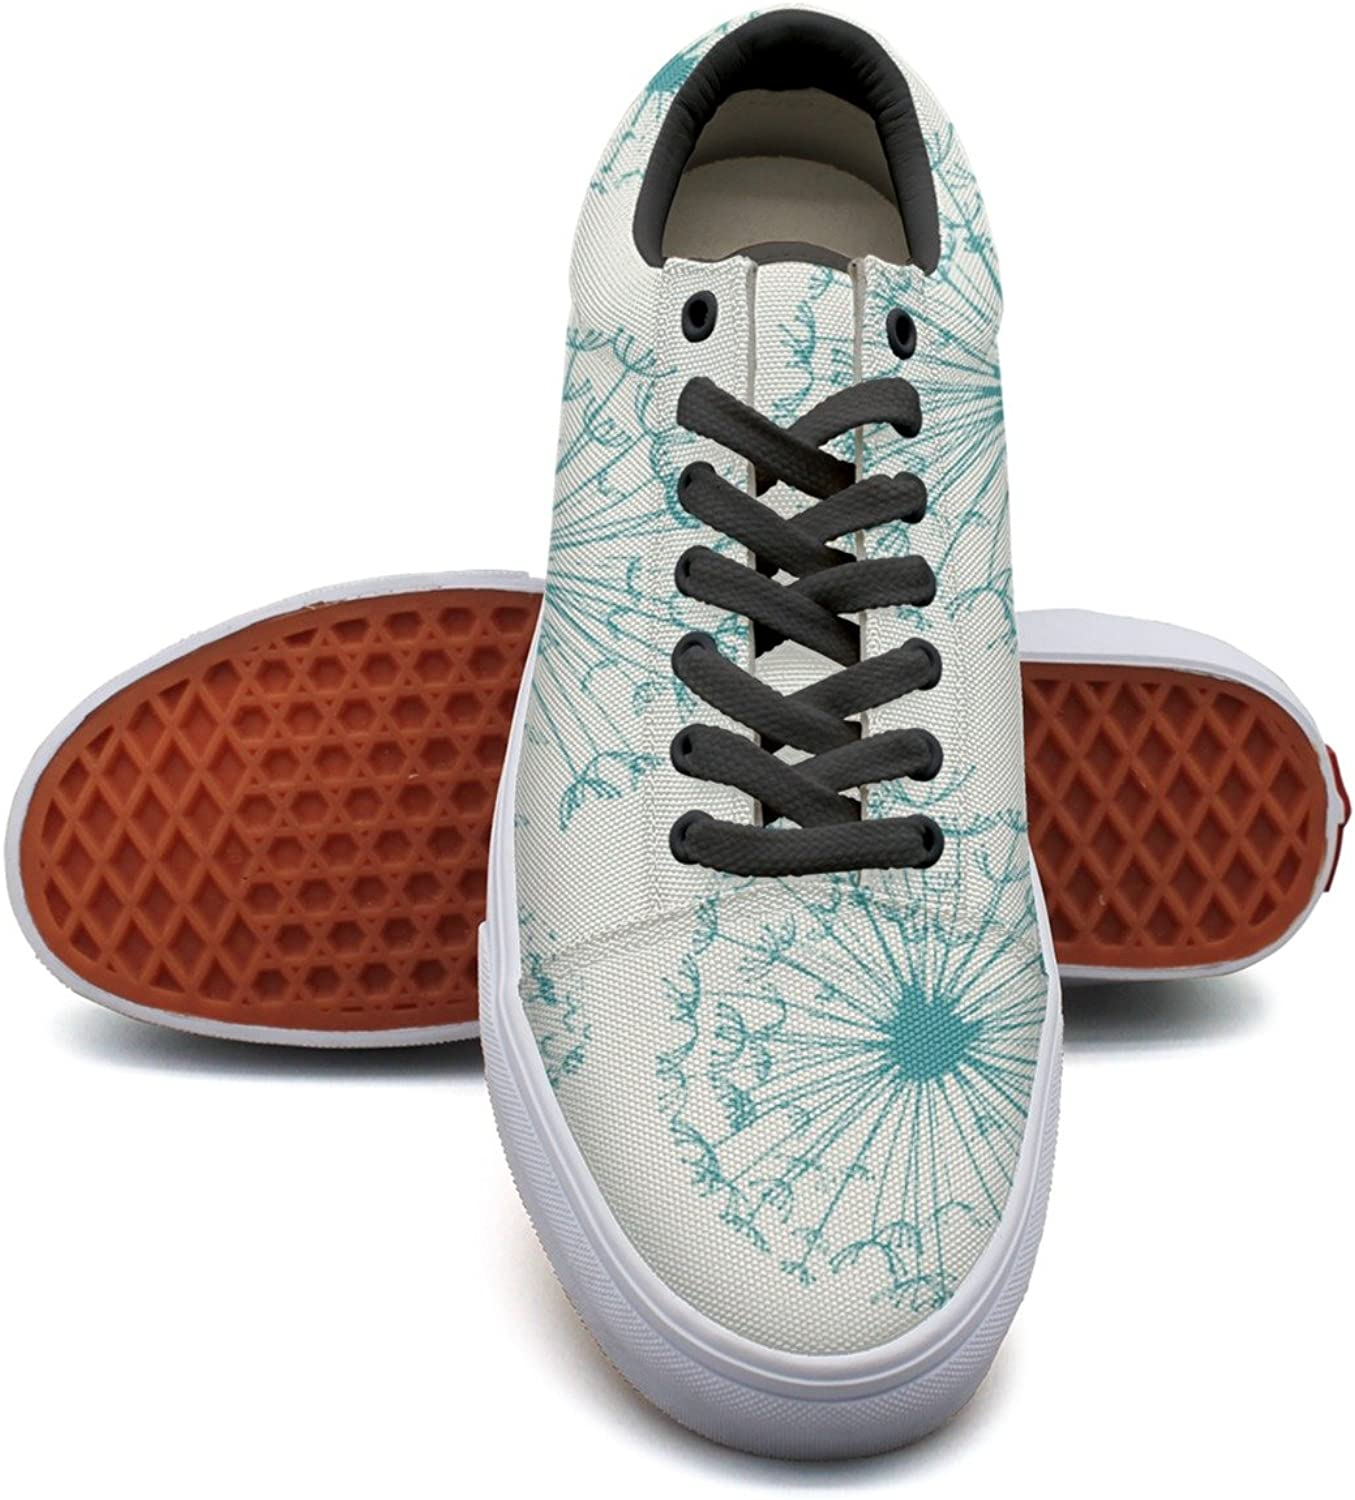 Green Dandelions Women's Casual Sneakers shoes Footwear Sports New Comfortable